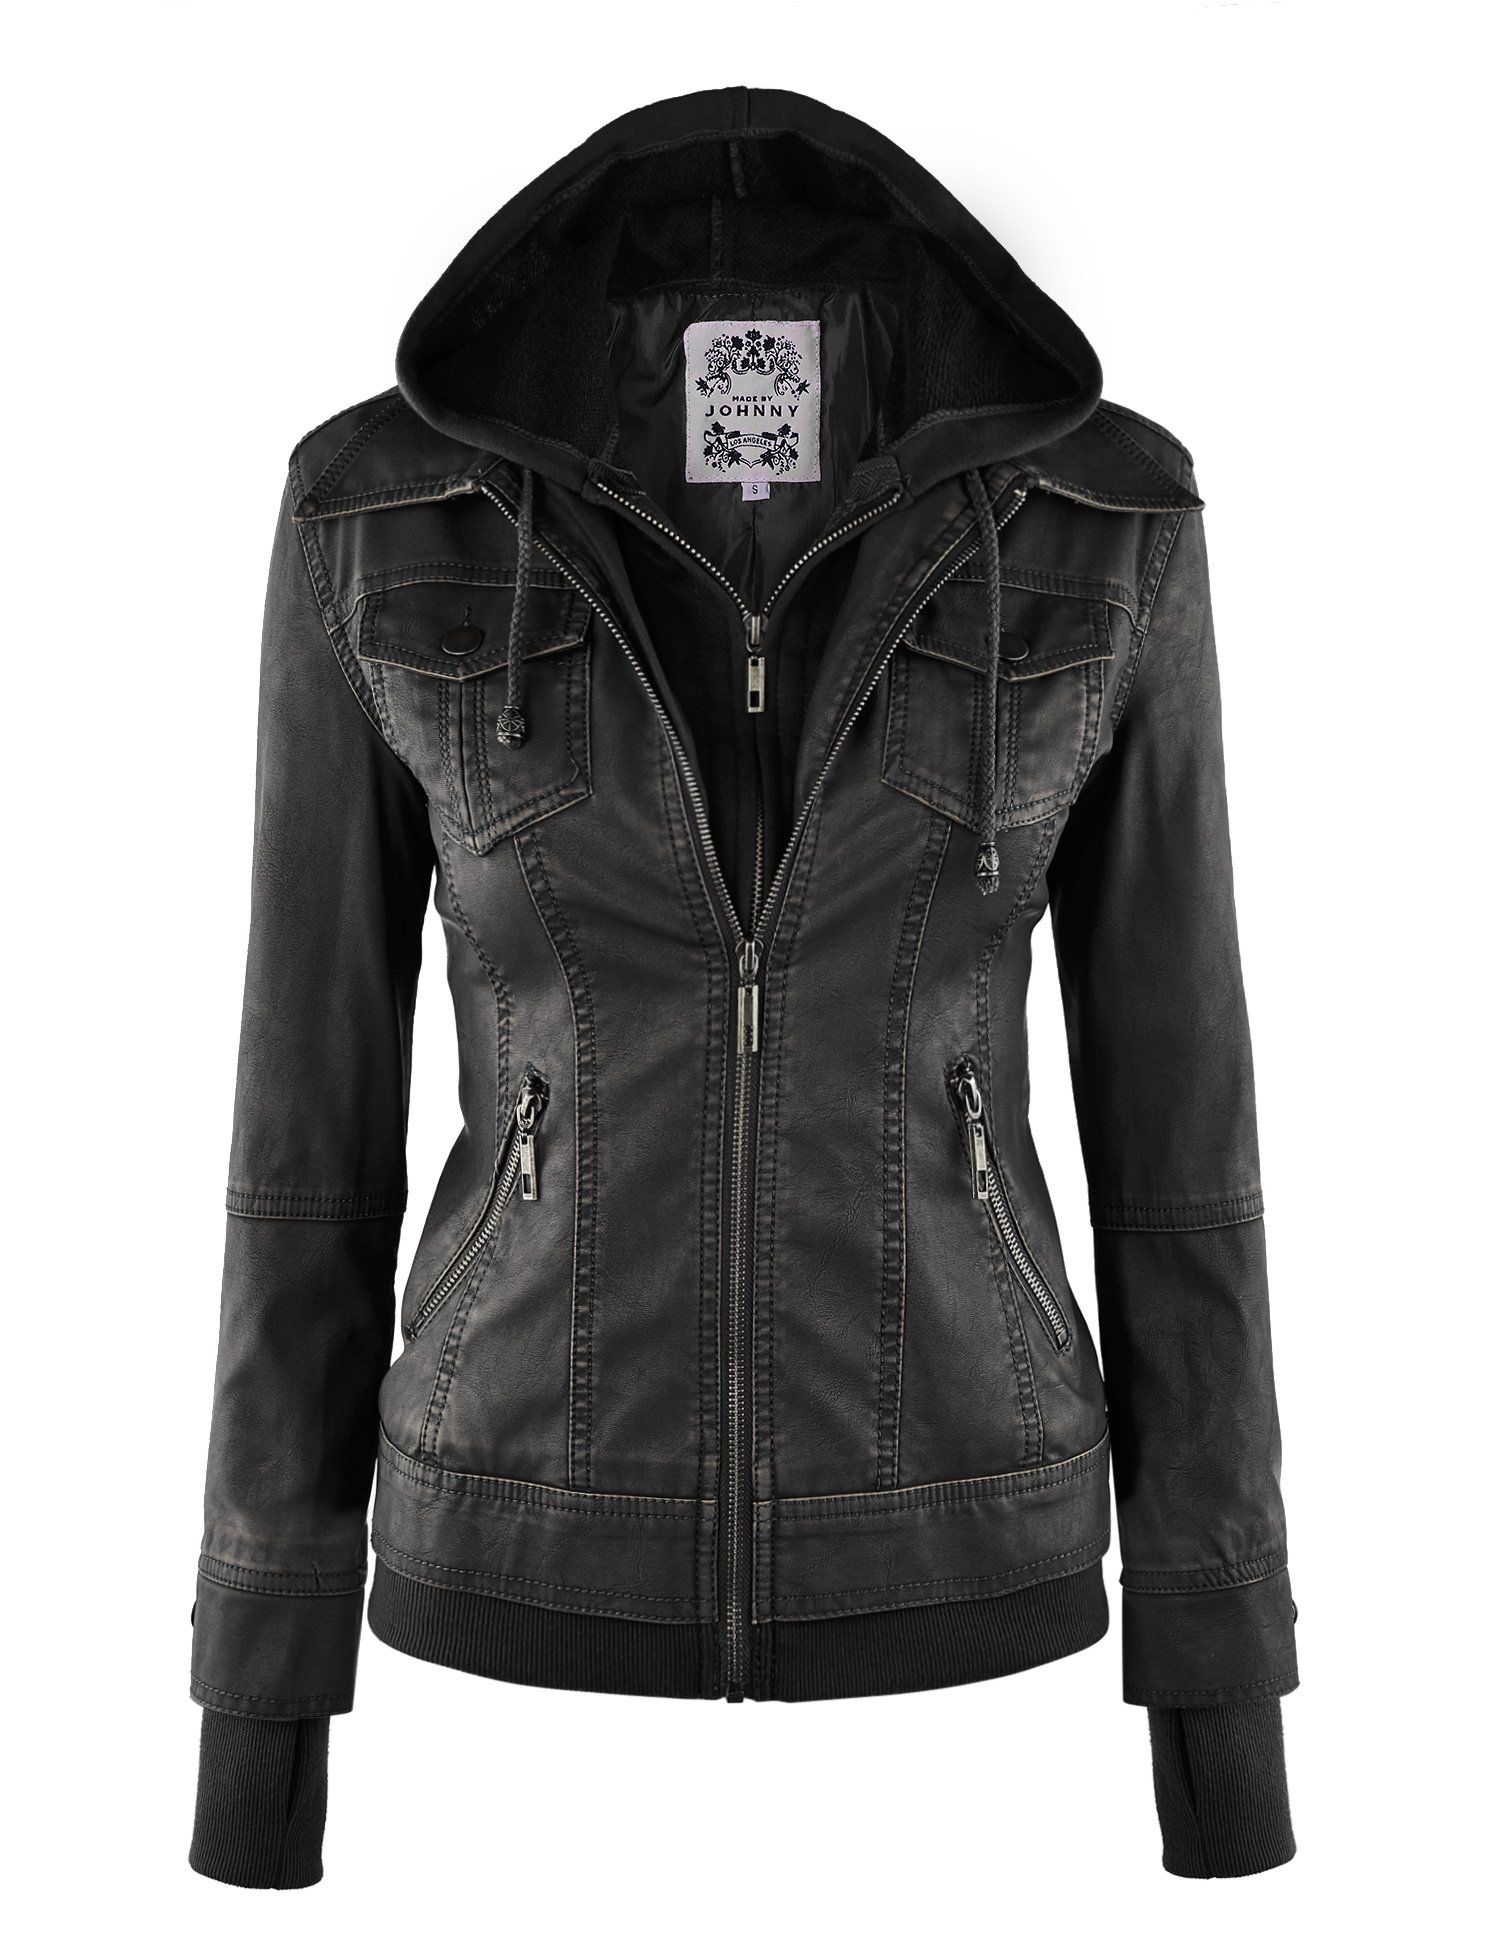 MBJ Womens Faux Leather Motorcycle Jacket With Hoodie at